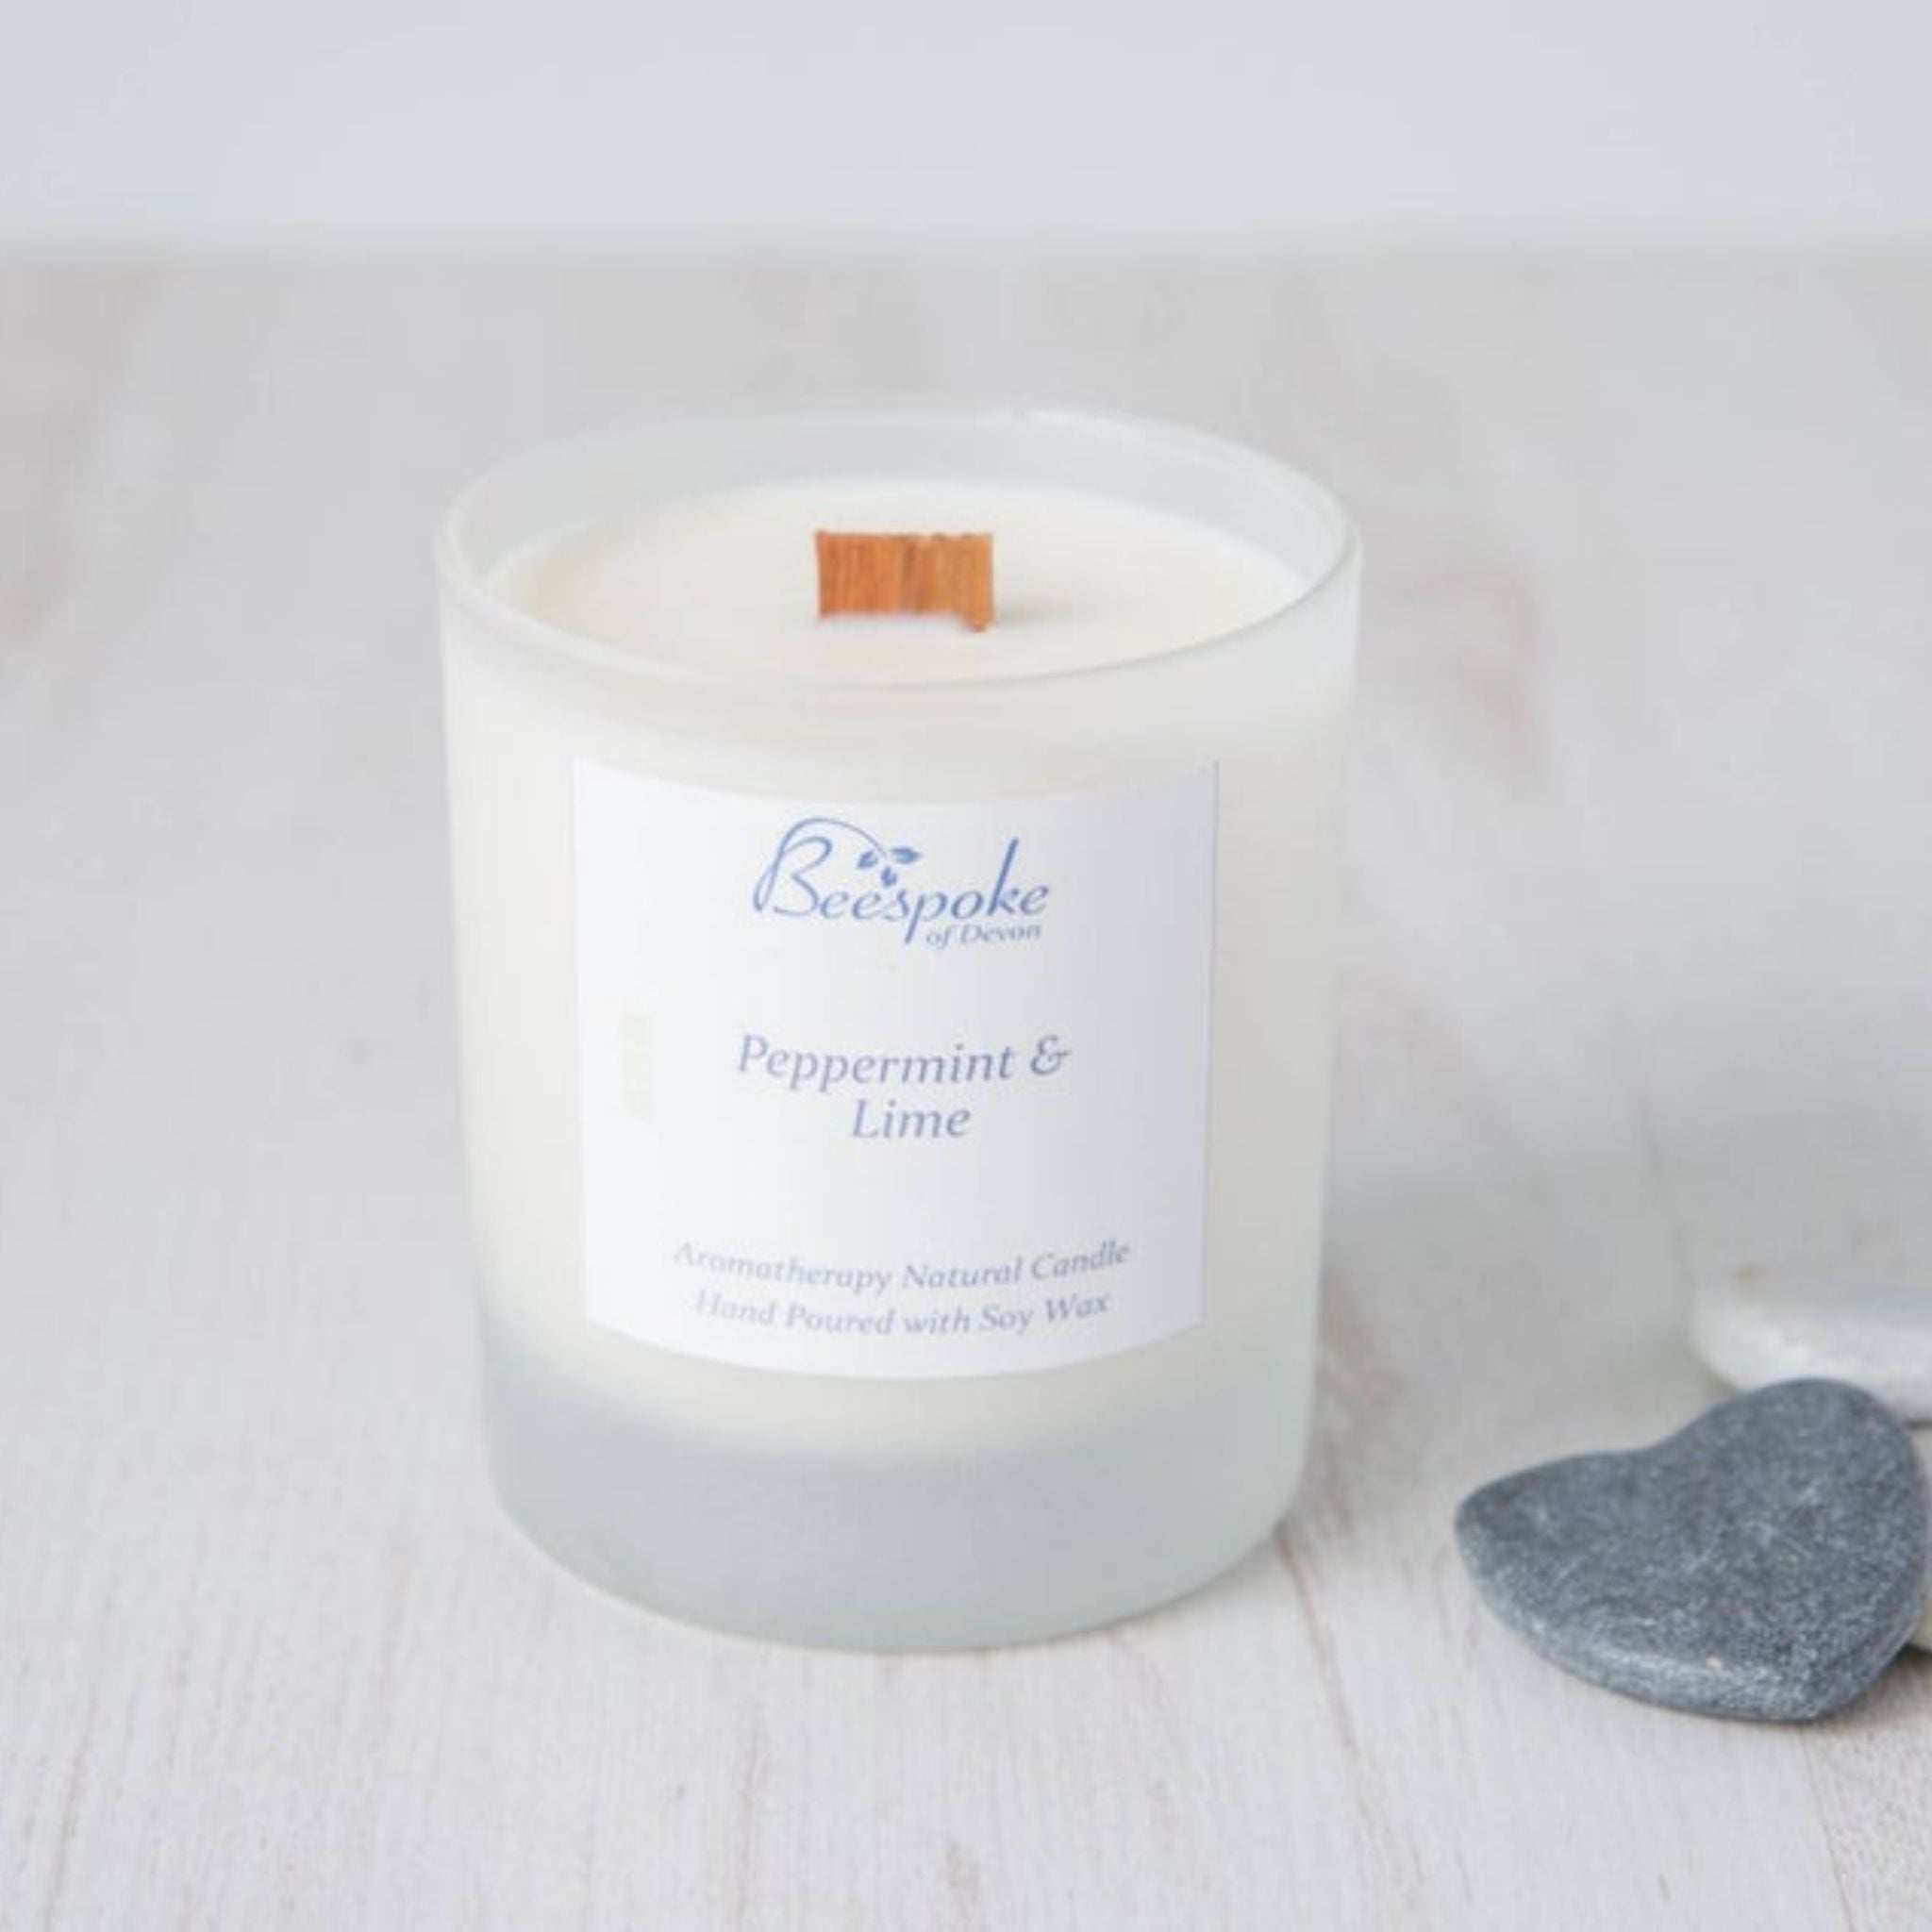 Wood Wick Aromatherapy Candle - Peppermint & Lime